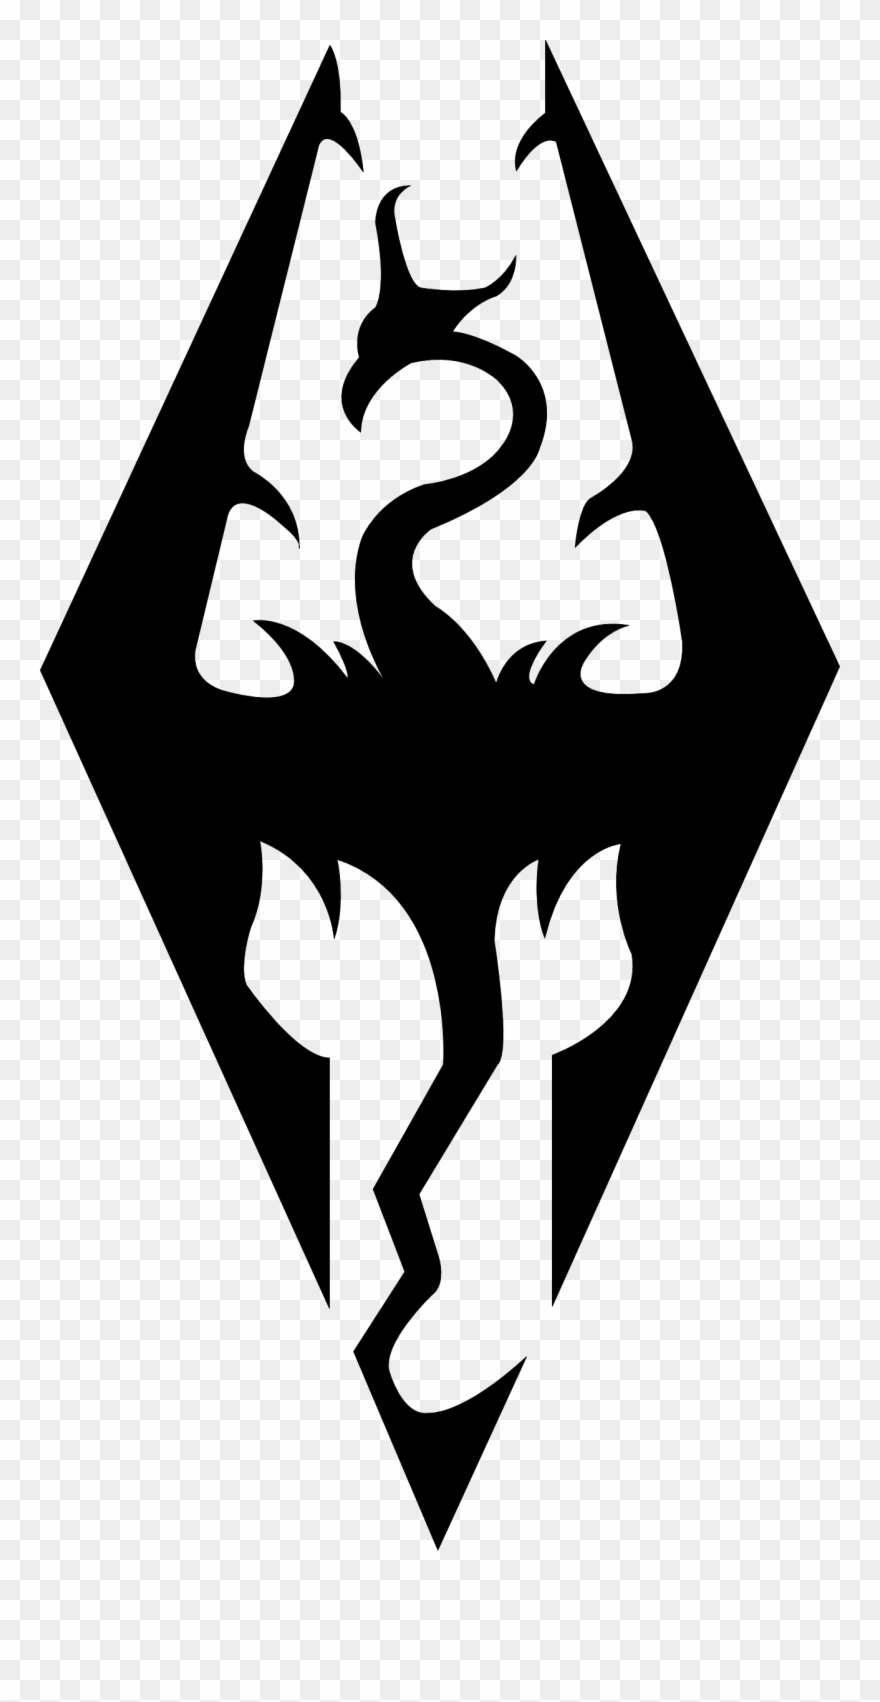 Clipart skyrim vector library Pin By Carmen Casini On Plotter - Skyrim Logo Silhouette Clipart ... vector library